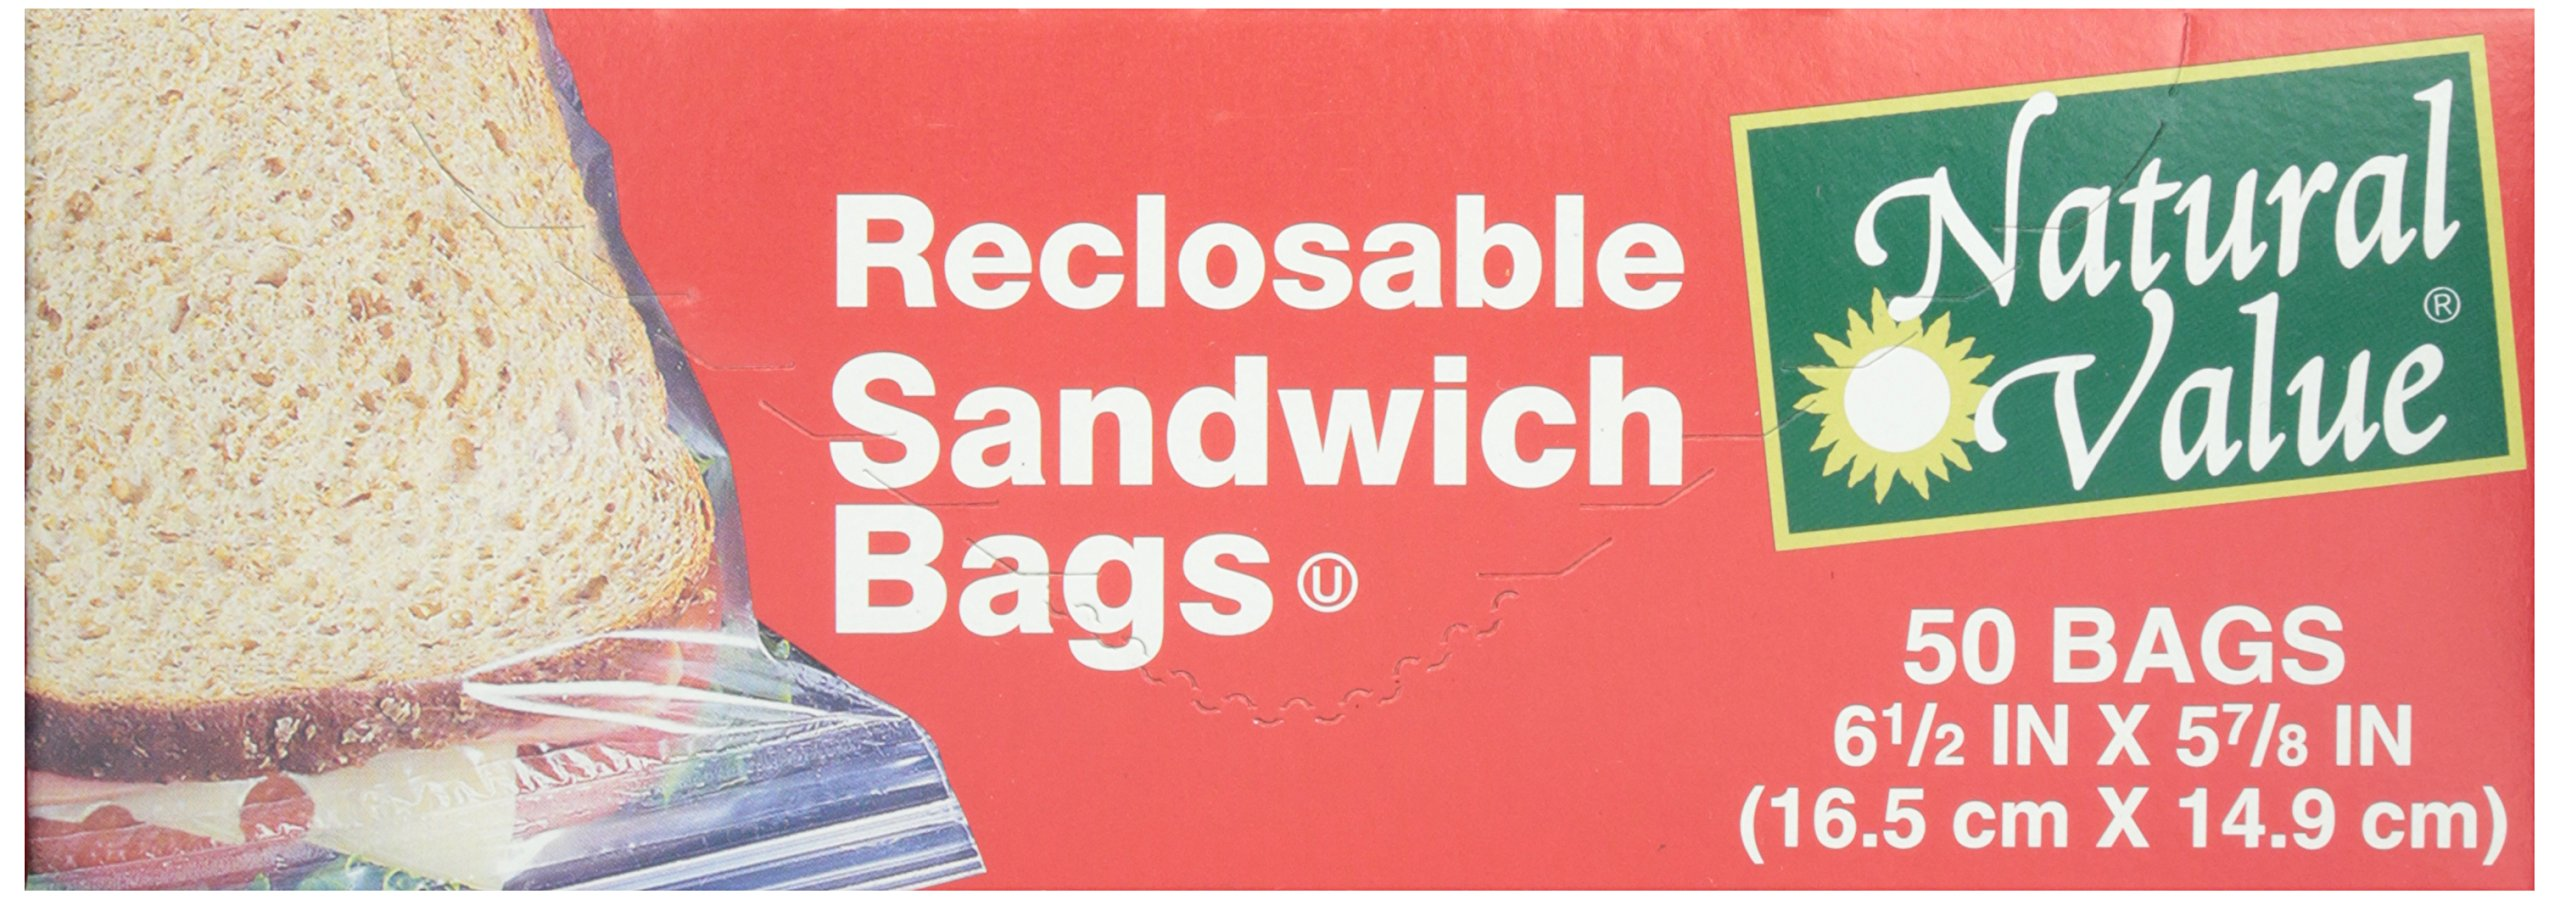 Natural Value, Sandwich Bags, 50 ct